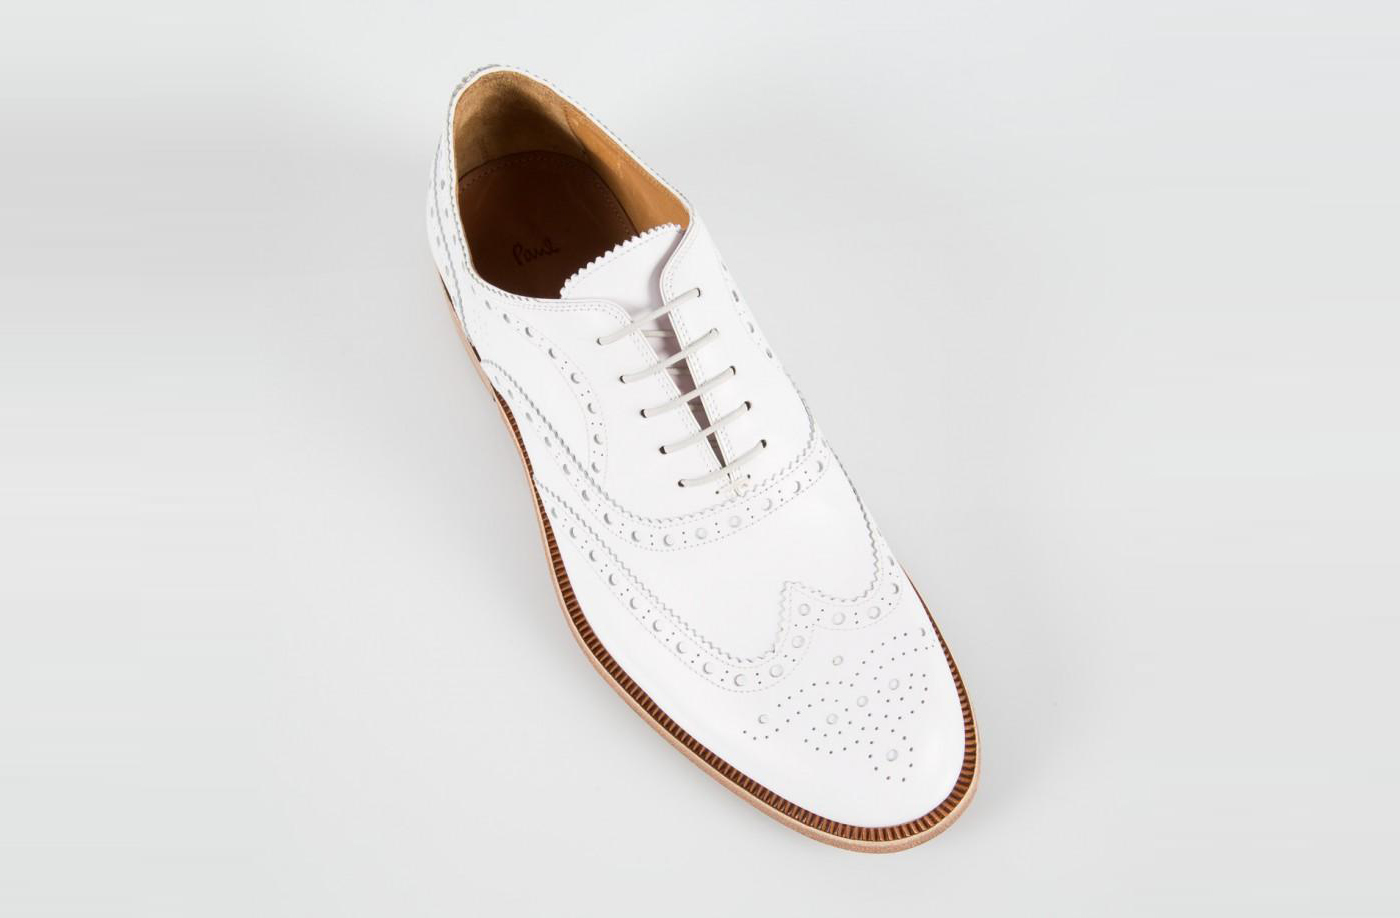 Pul-Smith-oxford-blanco-AW13-planta